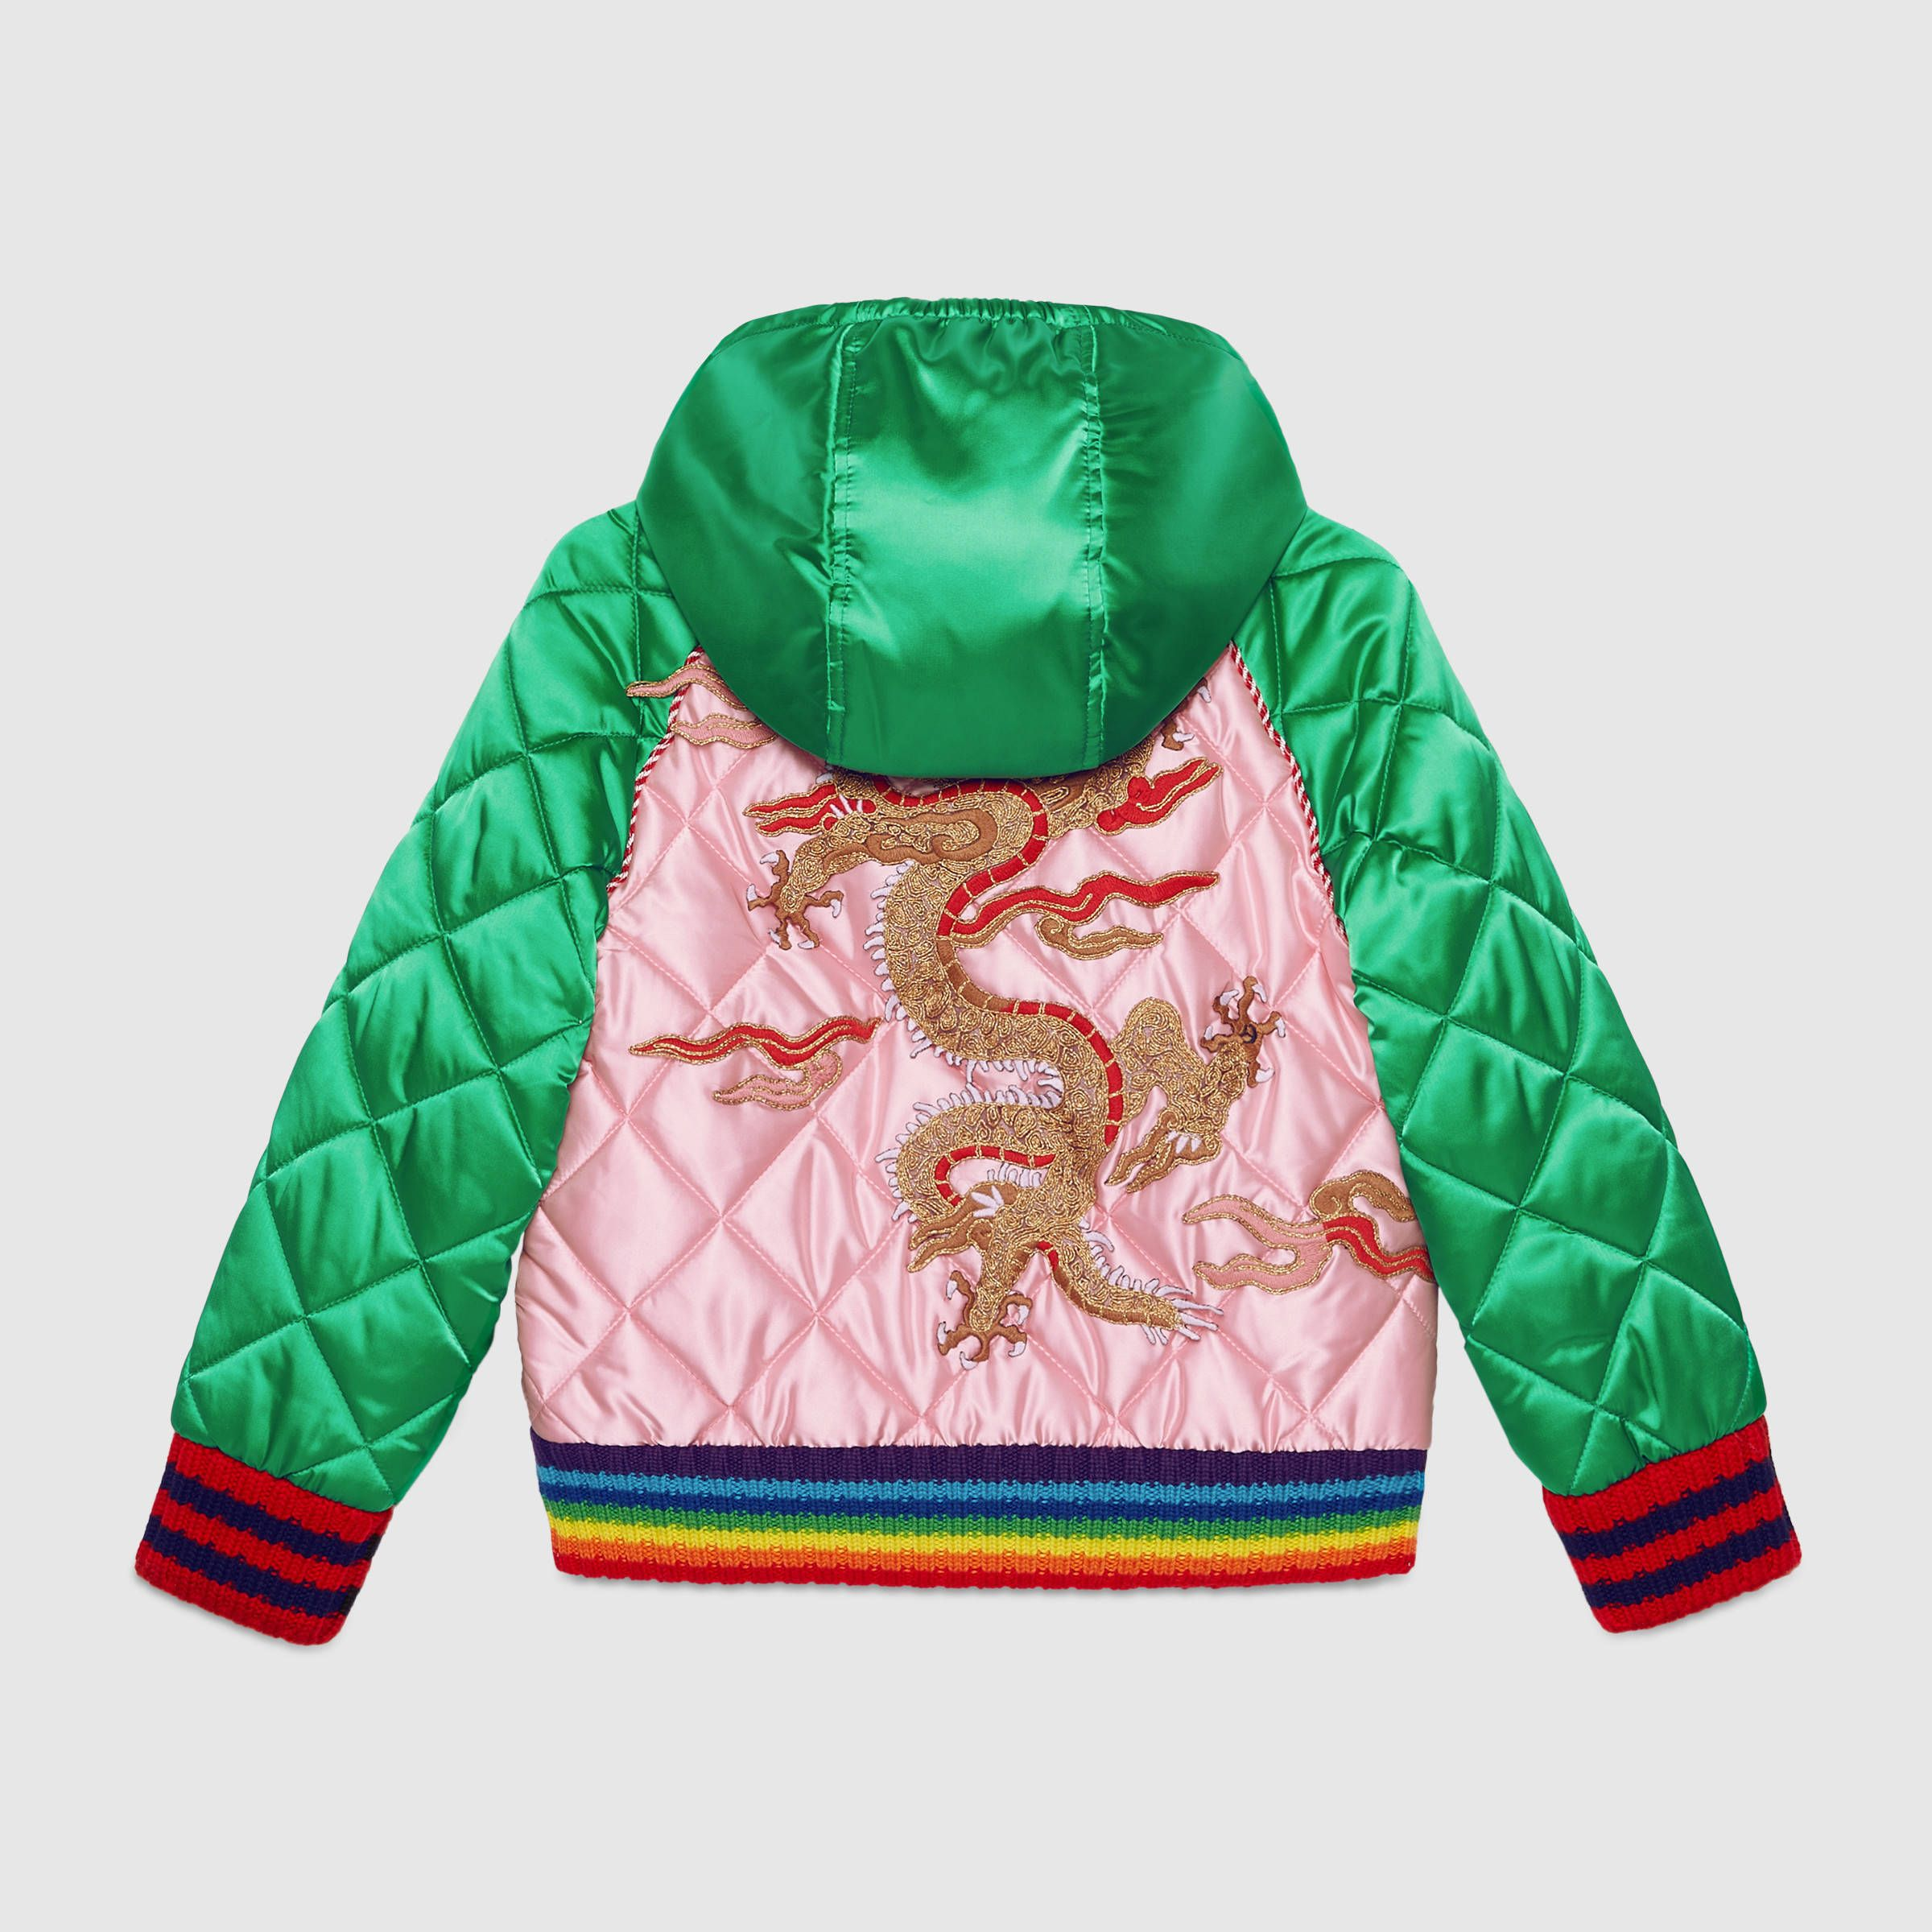 d84f8f924f79d Gucci Children s satin bomber jacket with dragon